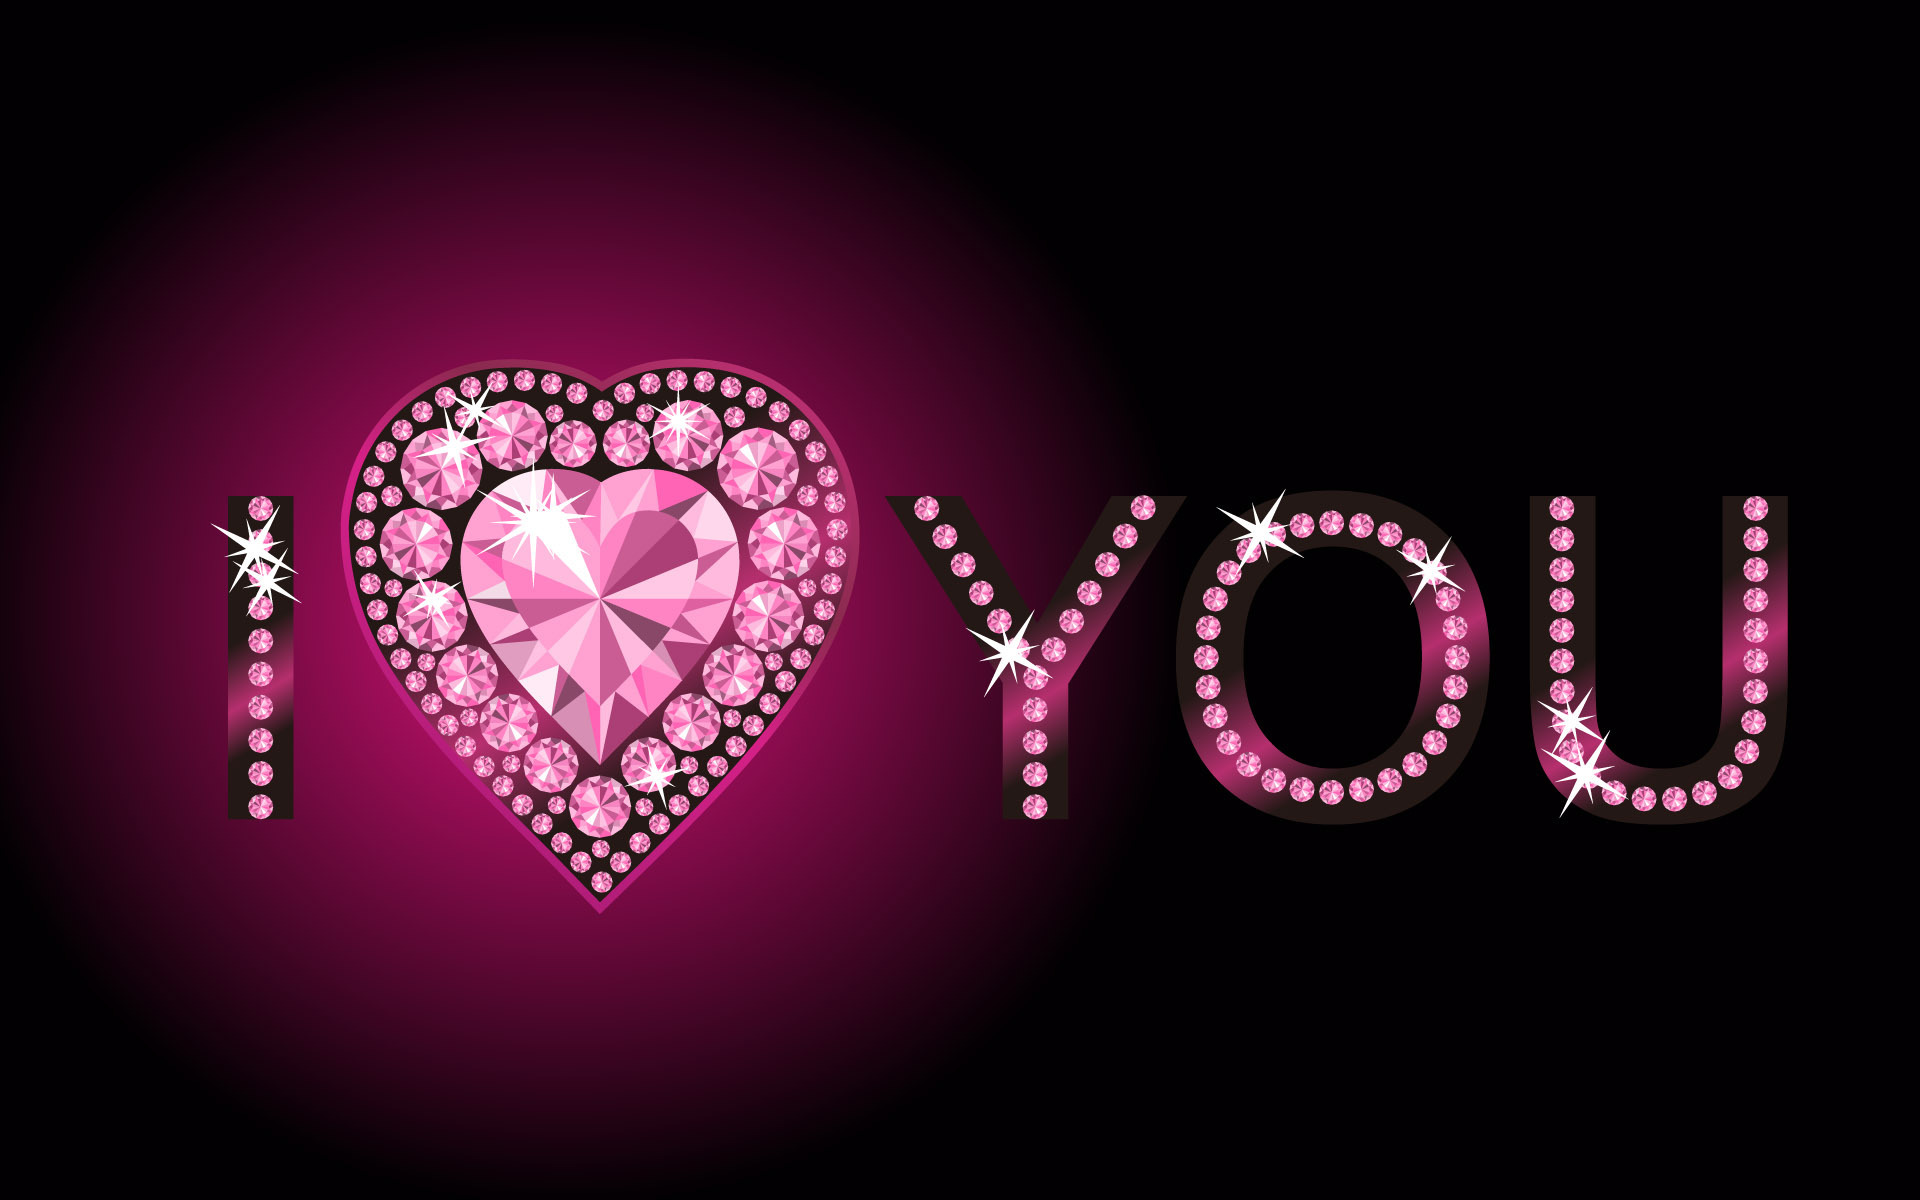 Love You 4 Wallpapers HD Wallpapers 1920x1200